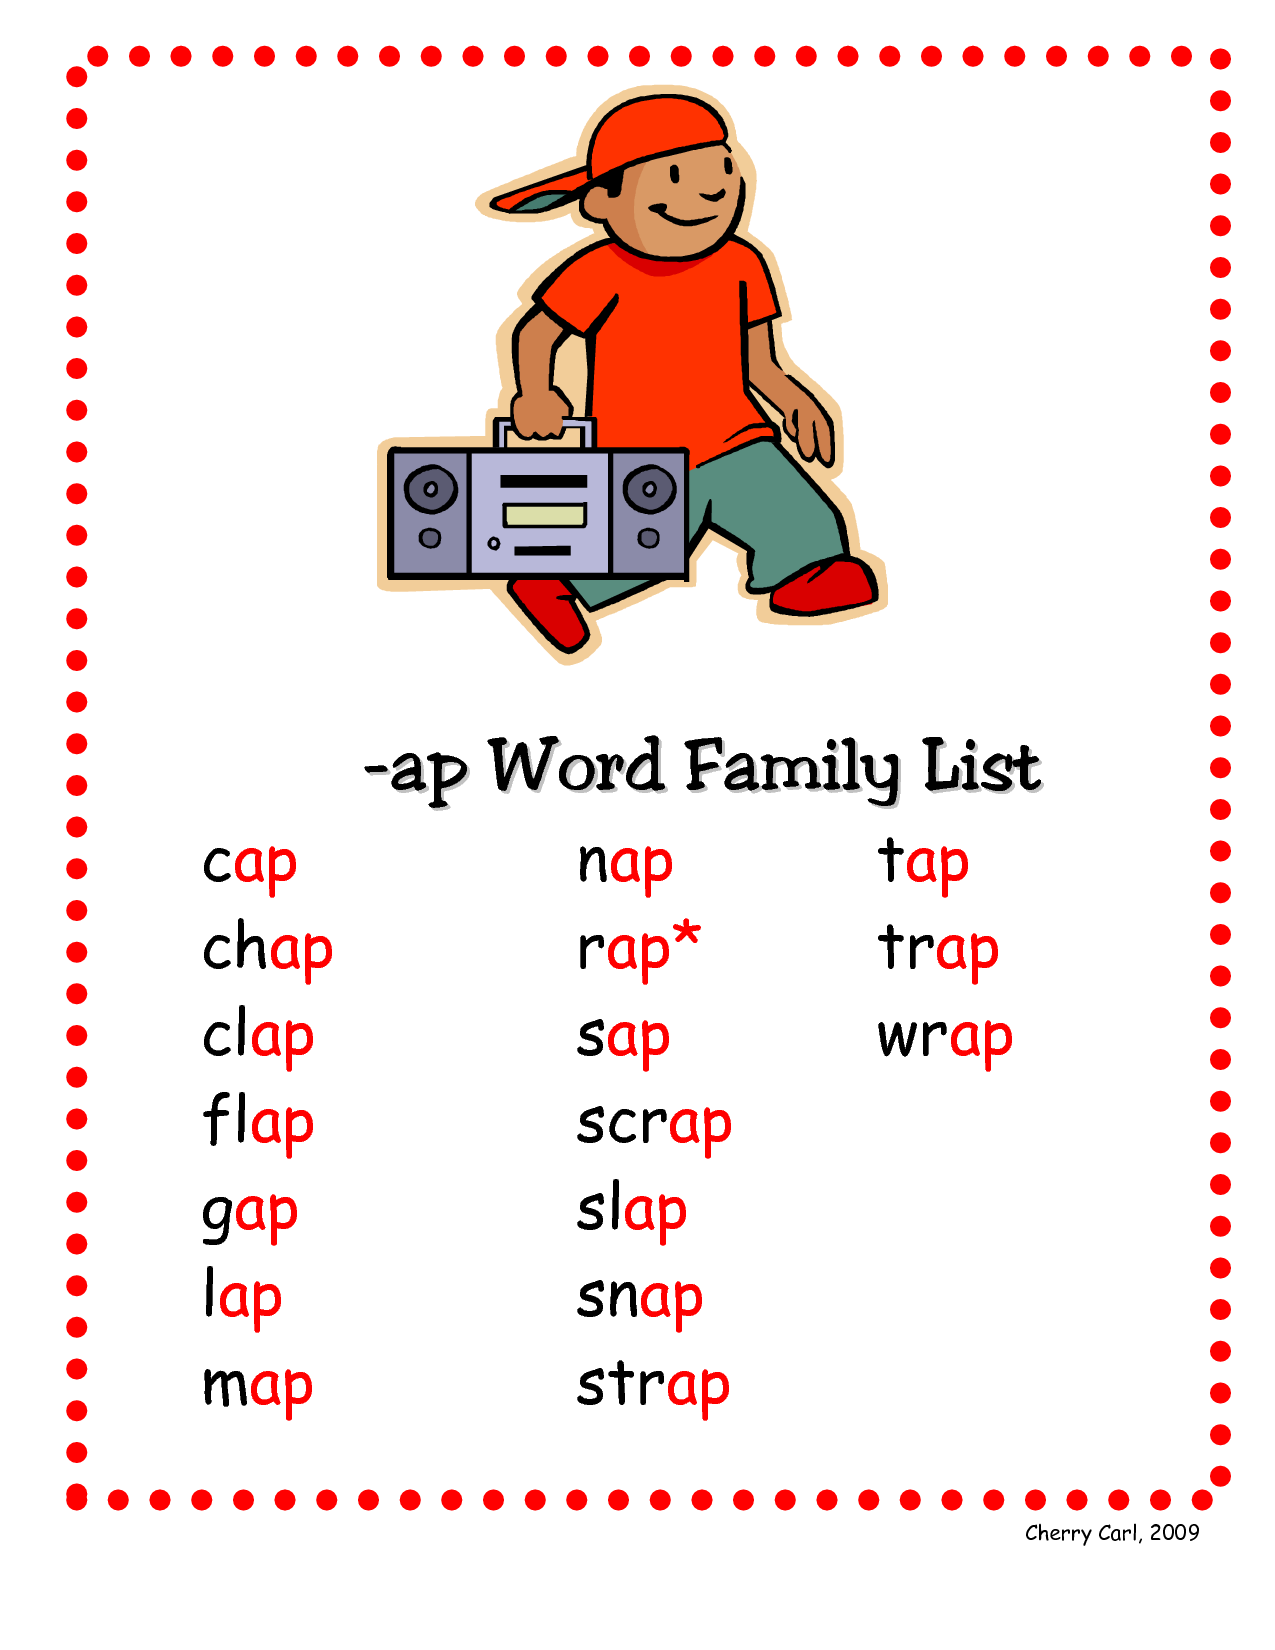 ap word family list word family list rhyming words kindergarten readiness working with